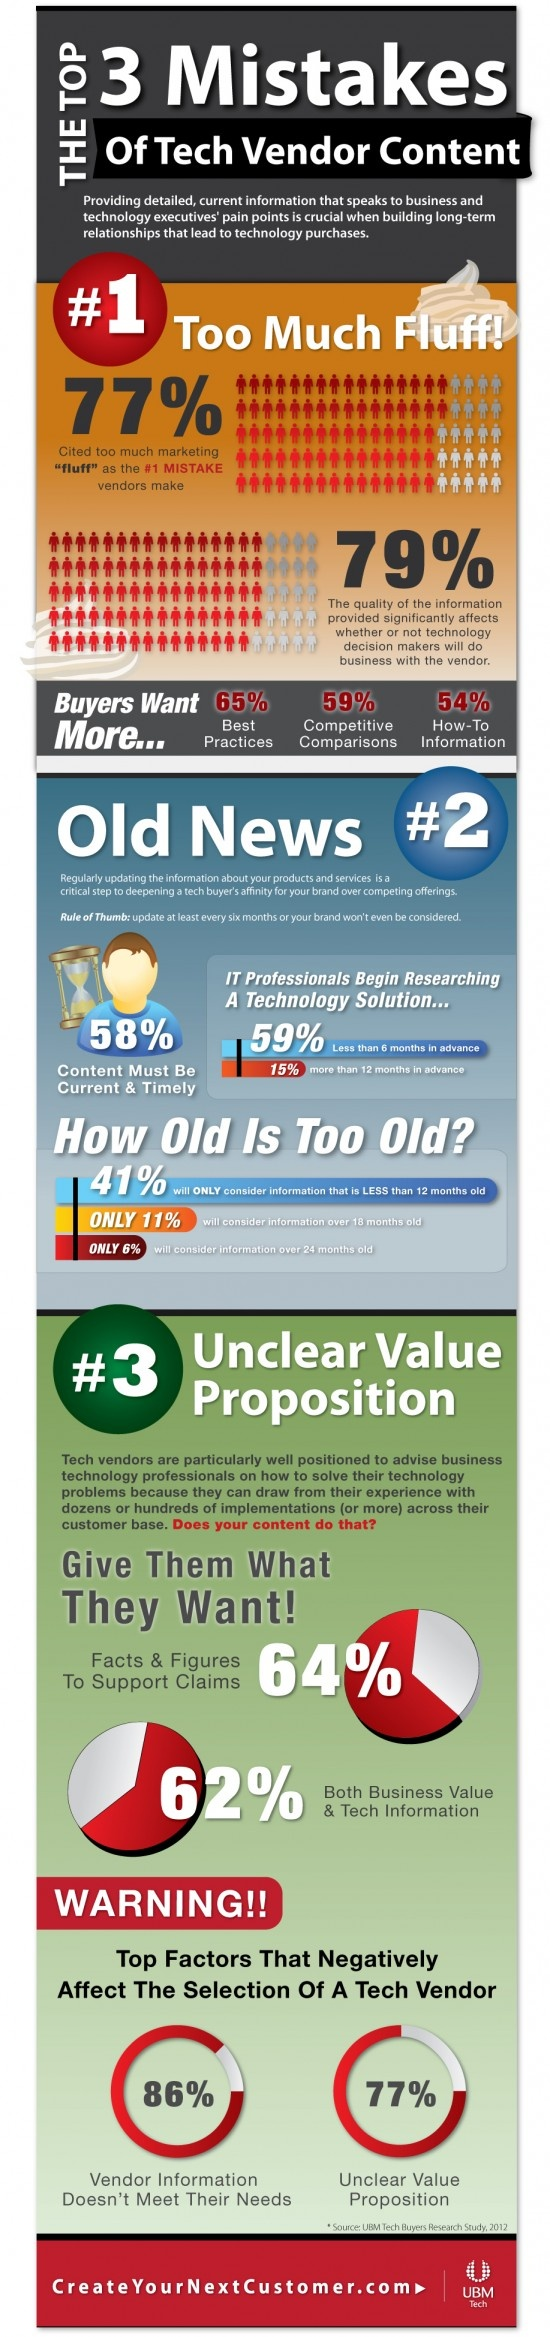 Top 3 Mistakes of Tech Vendor Content[Infographic]